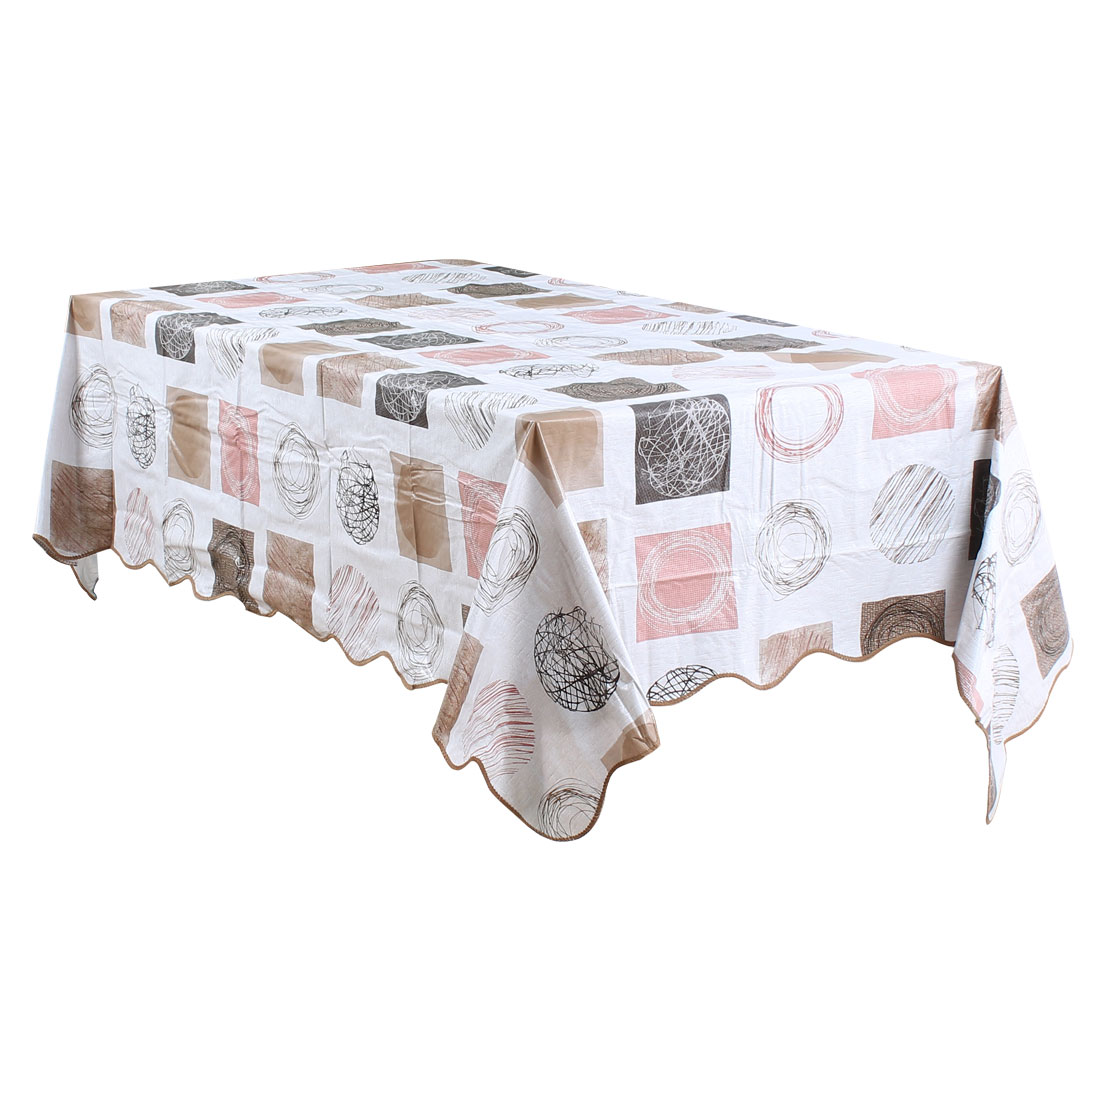 "Tablecloth PVC Vinyl Rectangle Table Cover Oil Stain Resistant 54"" x 71"", #5"